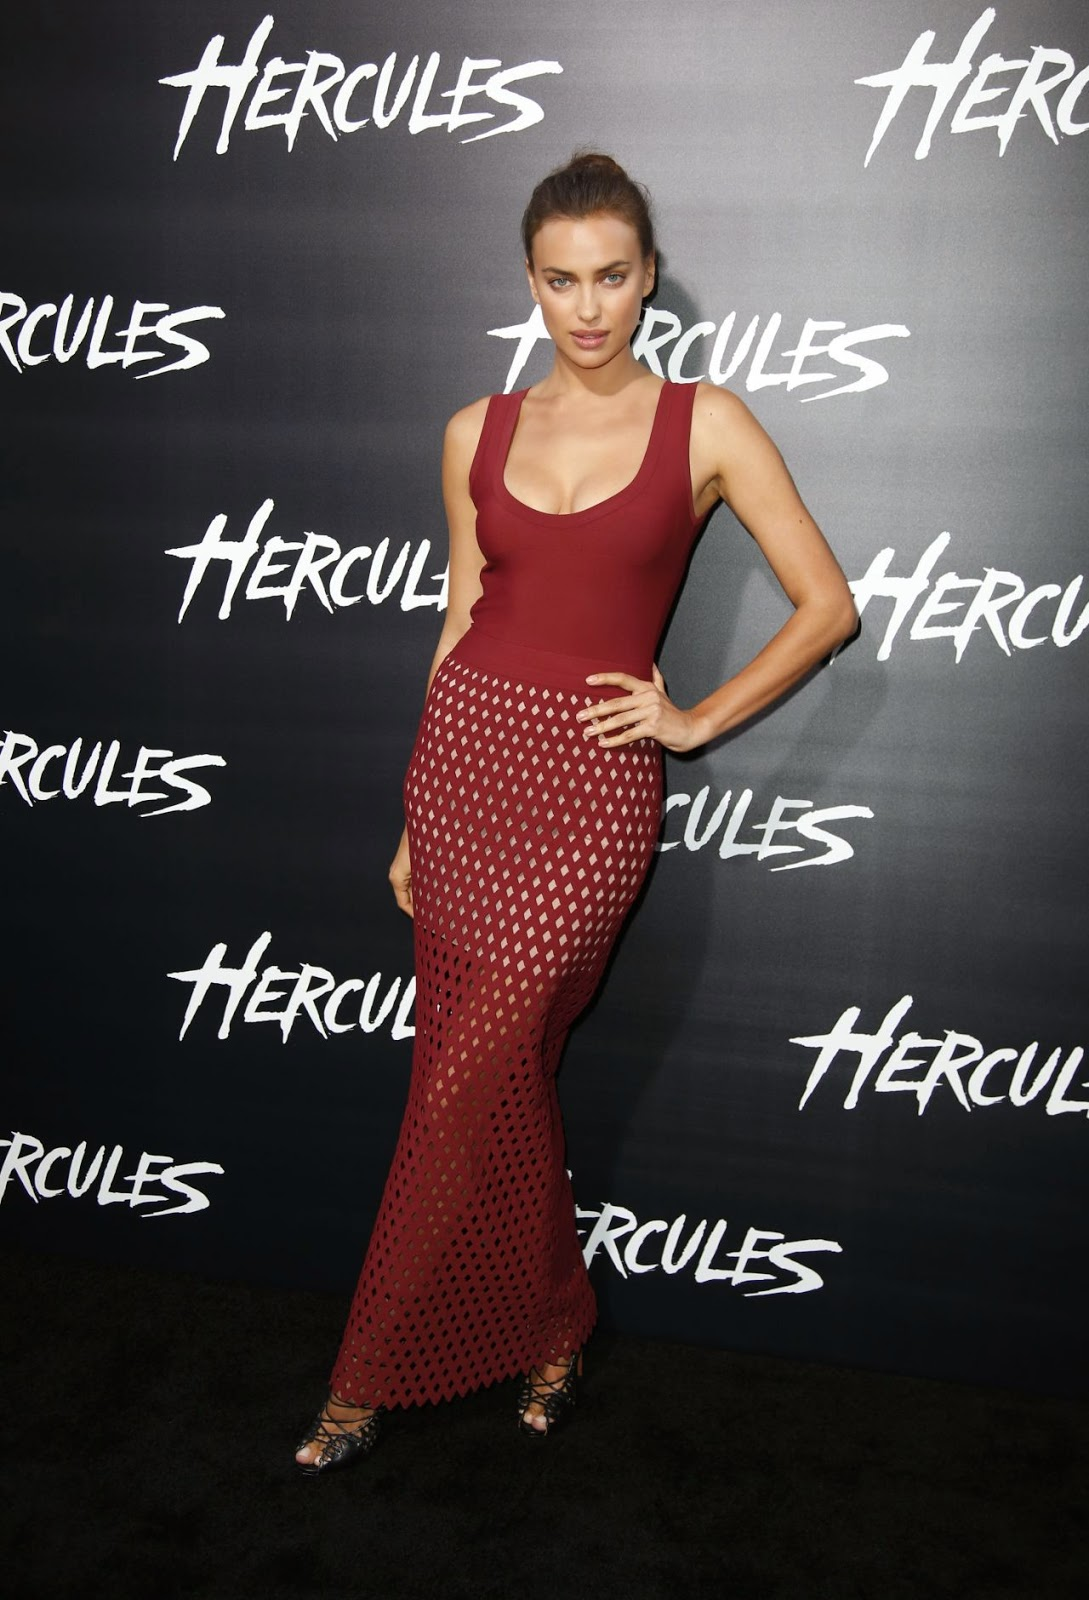 Irina Shayk arrives for the 'Hercules' LA premiere in an Azzedine Alaia dress